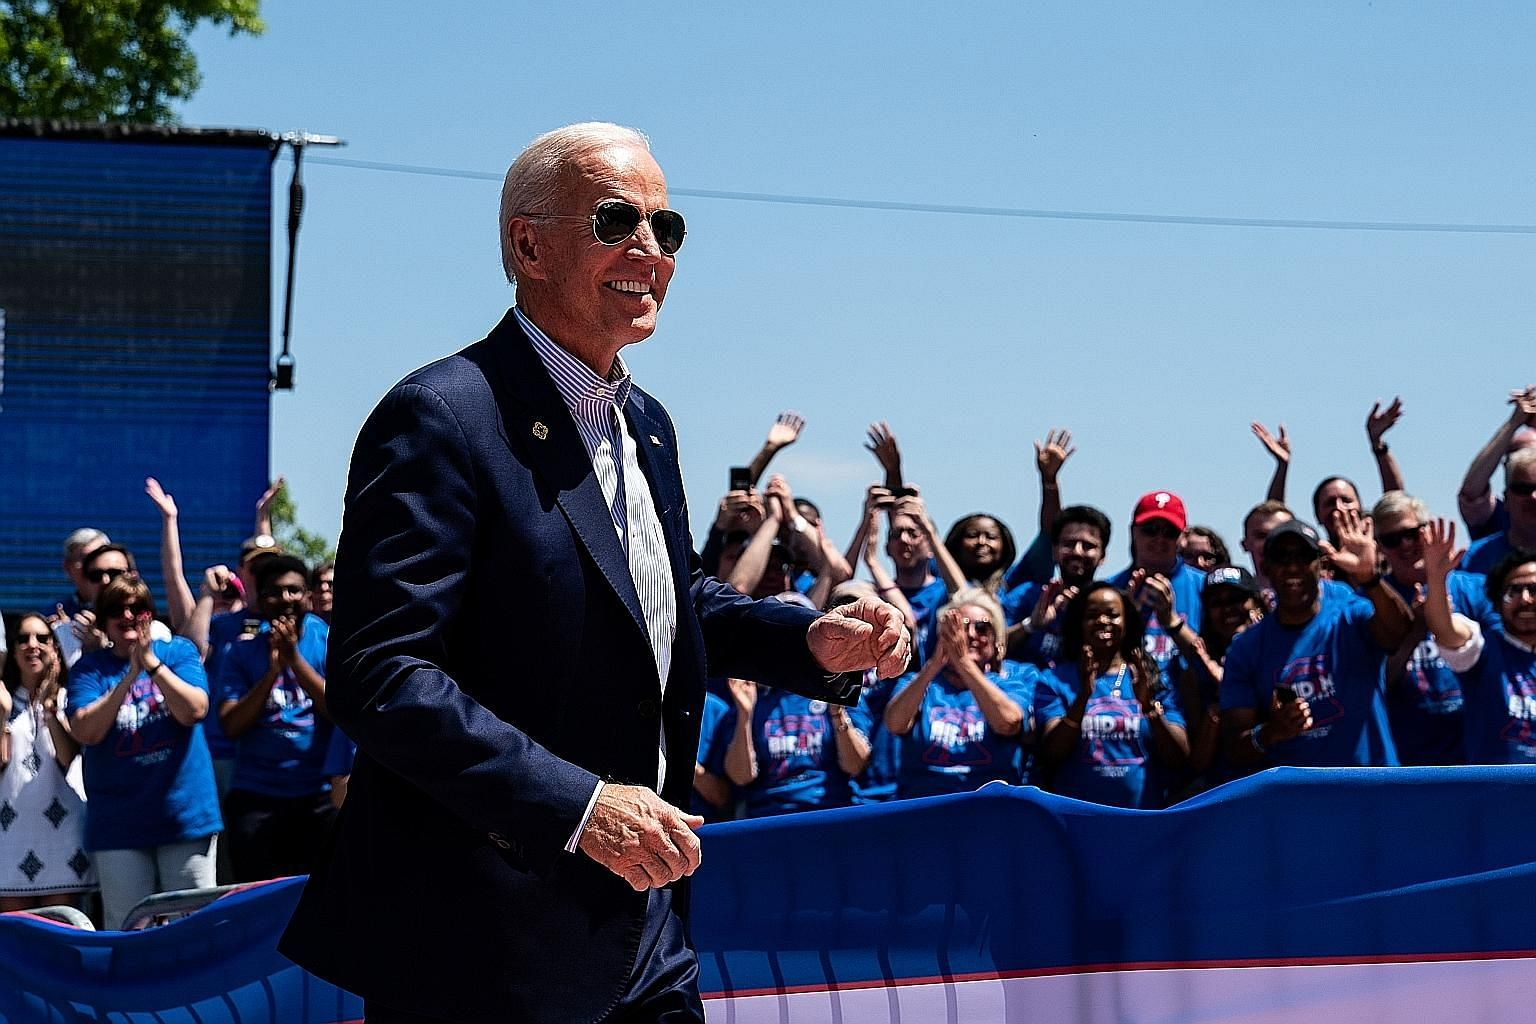 Former US vice-president Joe Biden during a rally kicking off his presidential campaign in Philadelphia last month. Mr Biden, 76, now in his third White House bid, leads comfortably in all polls and is the Democratic candidate to beat in the most cro